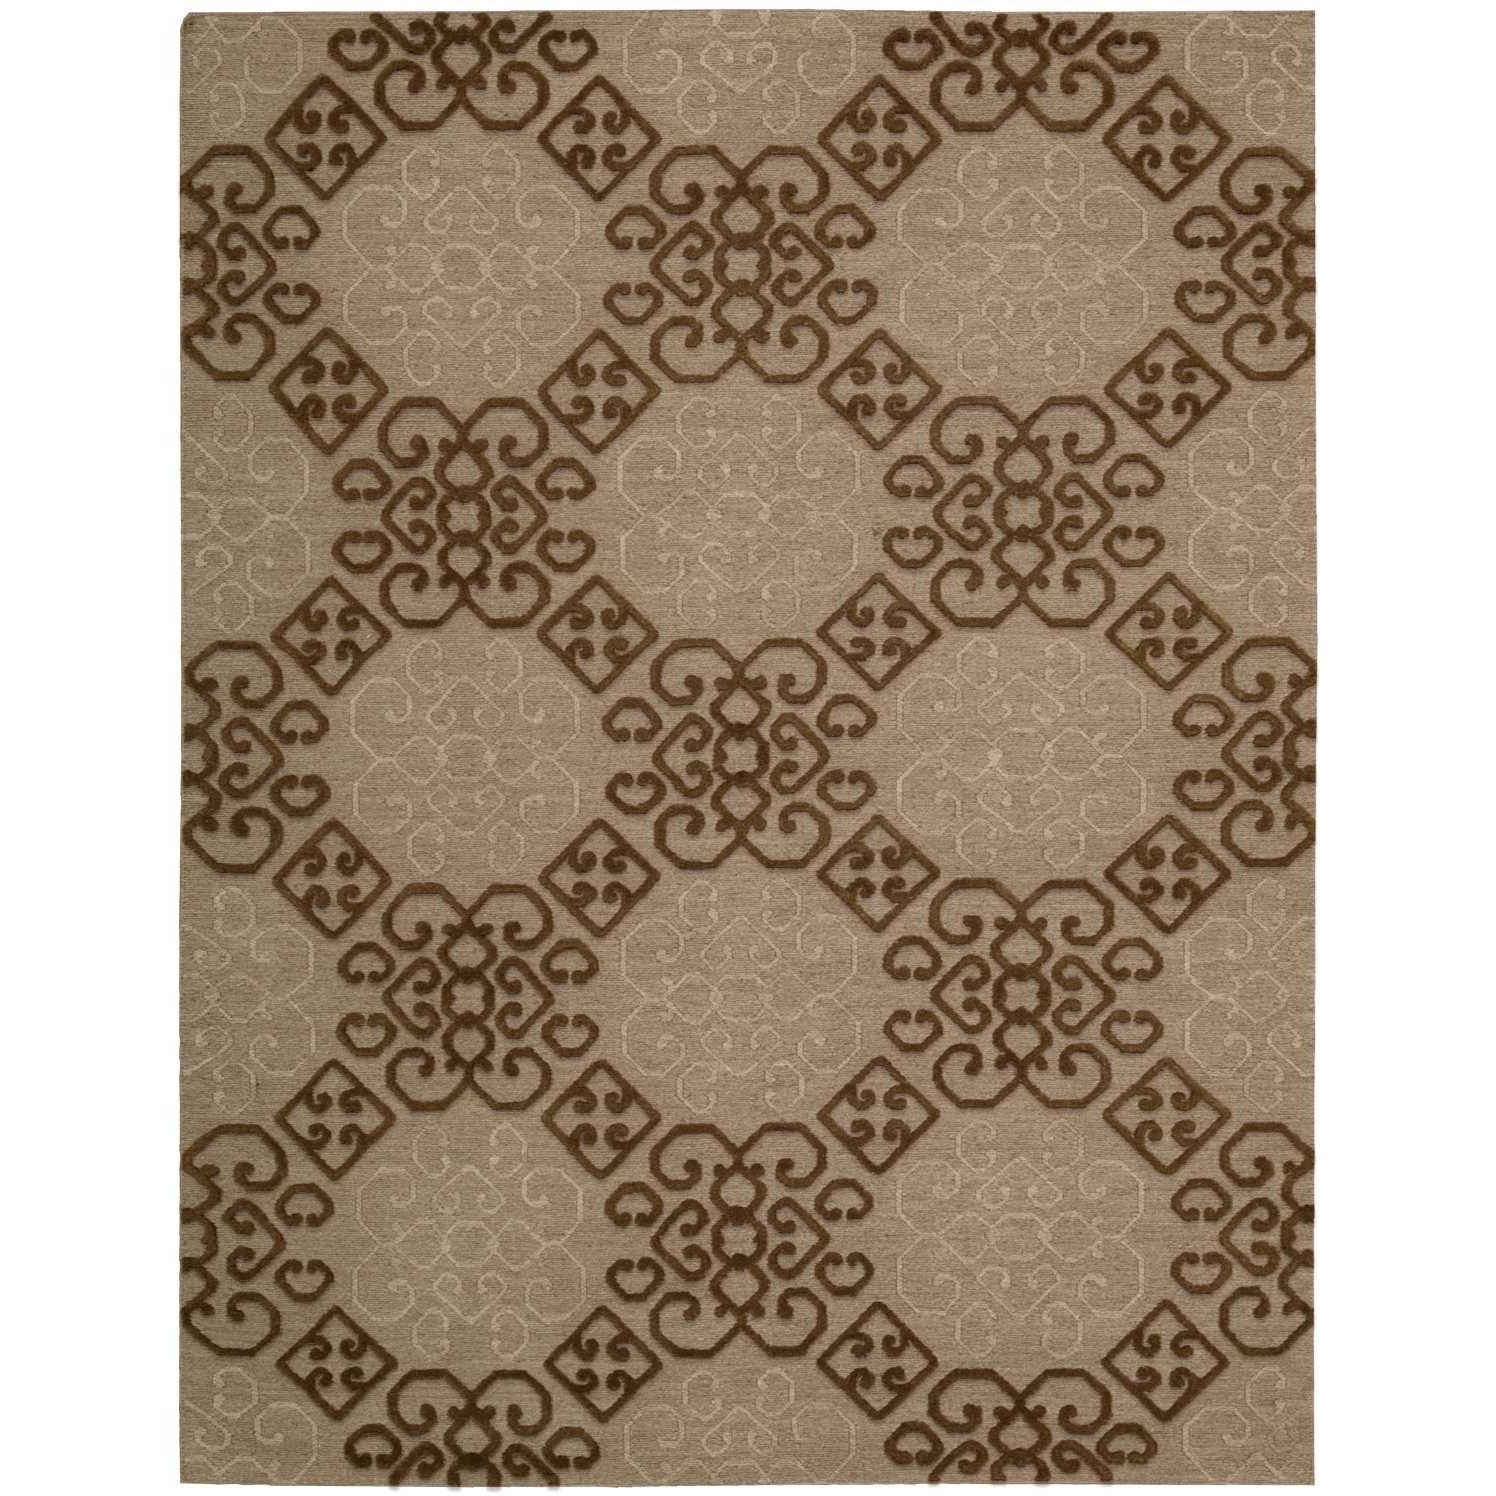 "Ambrose 5'6"" x 7'5"" Almond Rectangle Rug by Nourison at Home Collections Furniture"